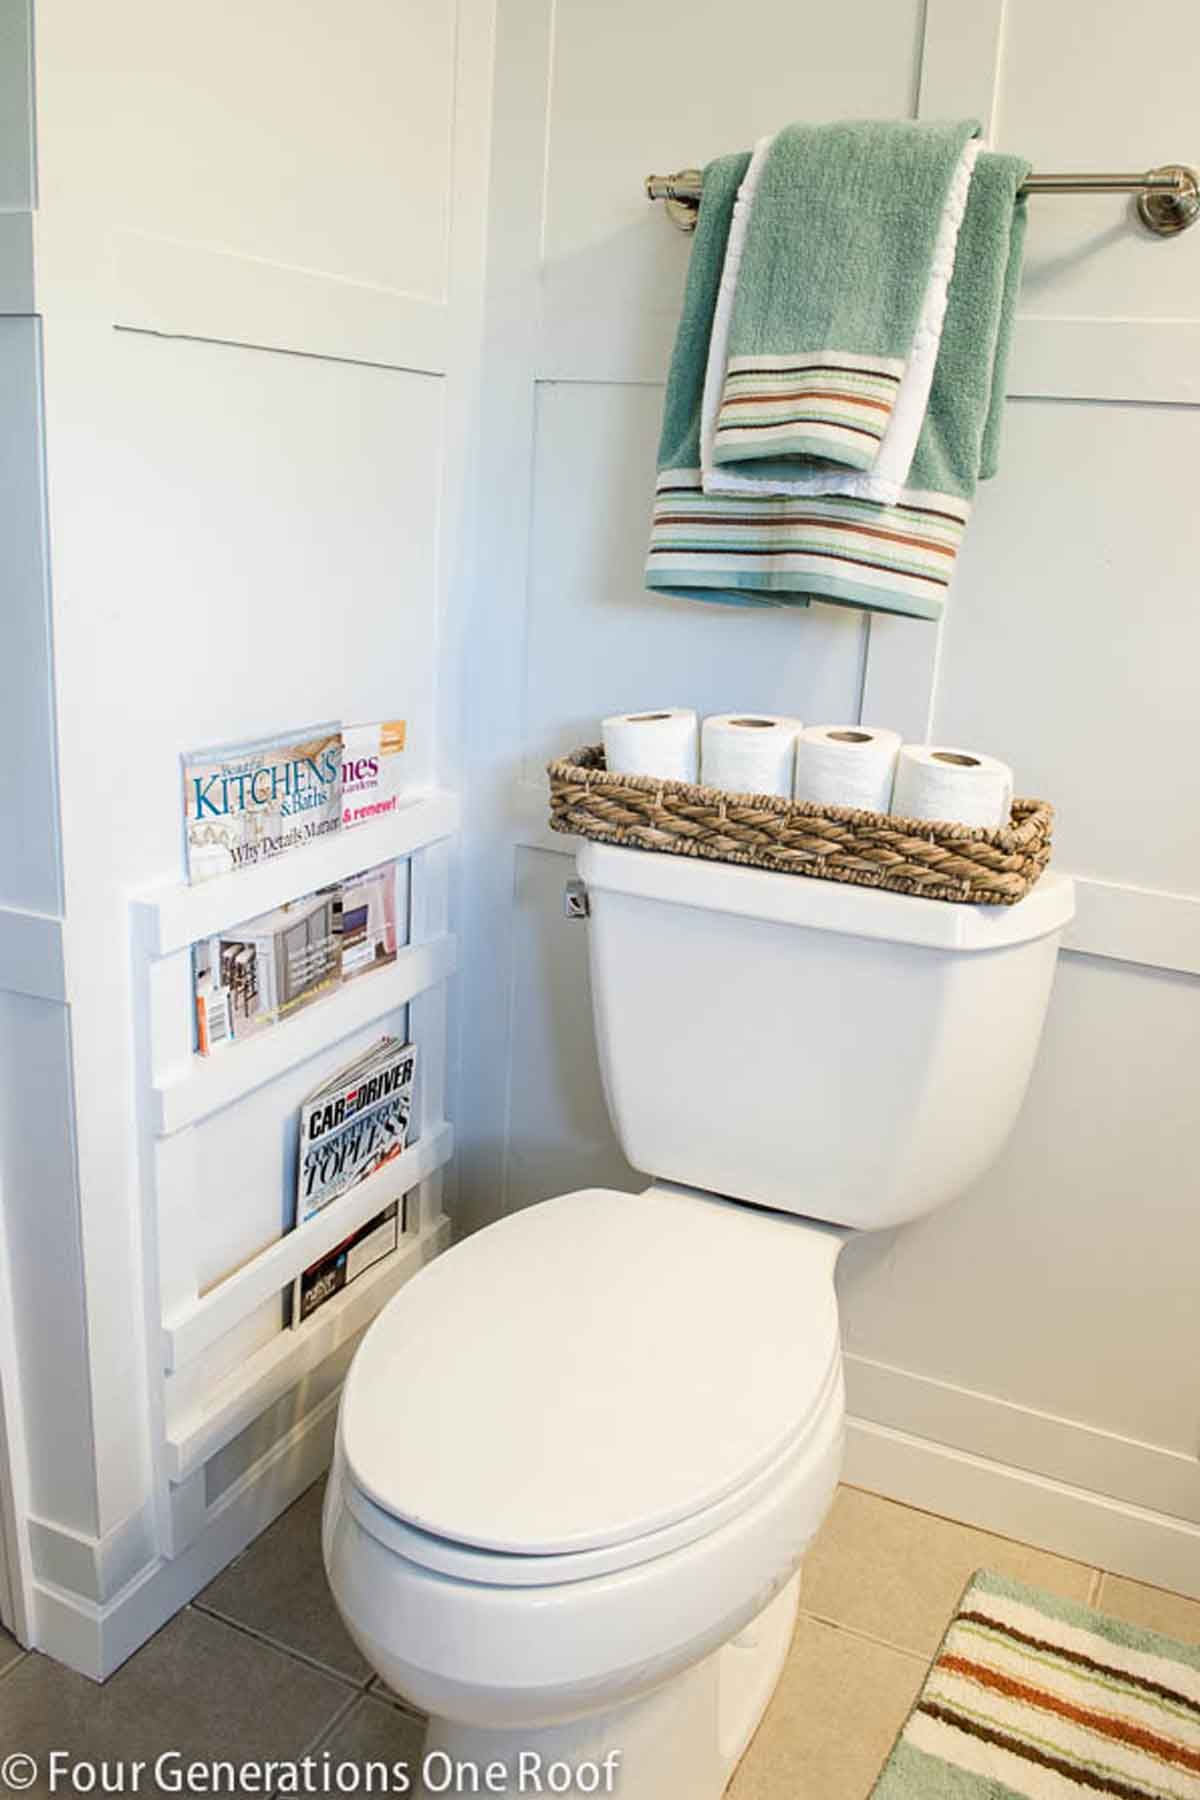 20 Best Bathroom Organization Ideas - DIY Bathroom Storage Organizers